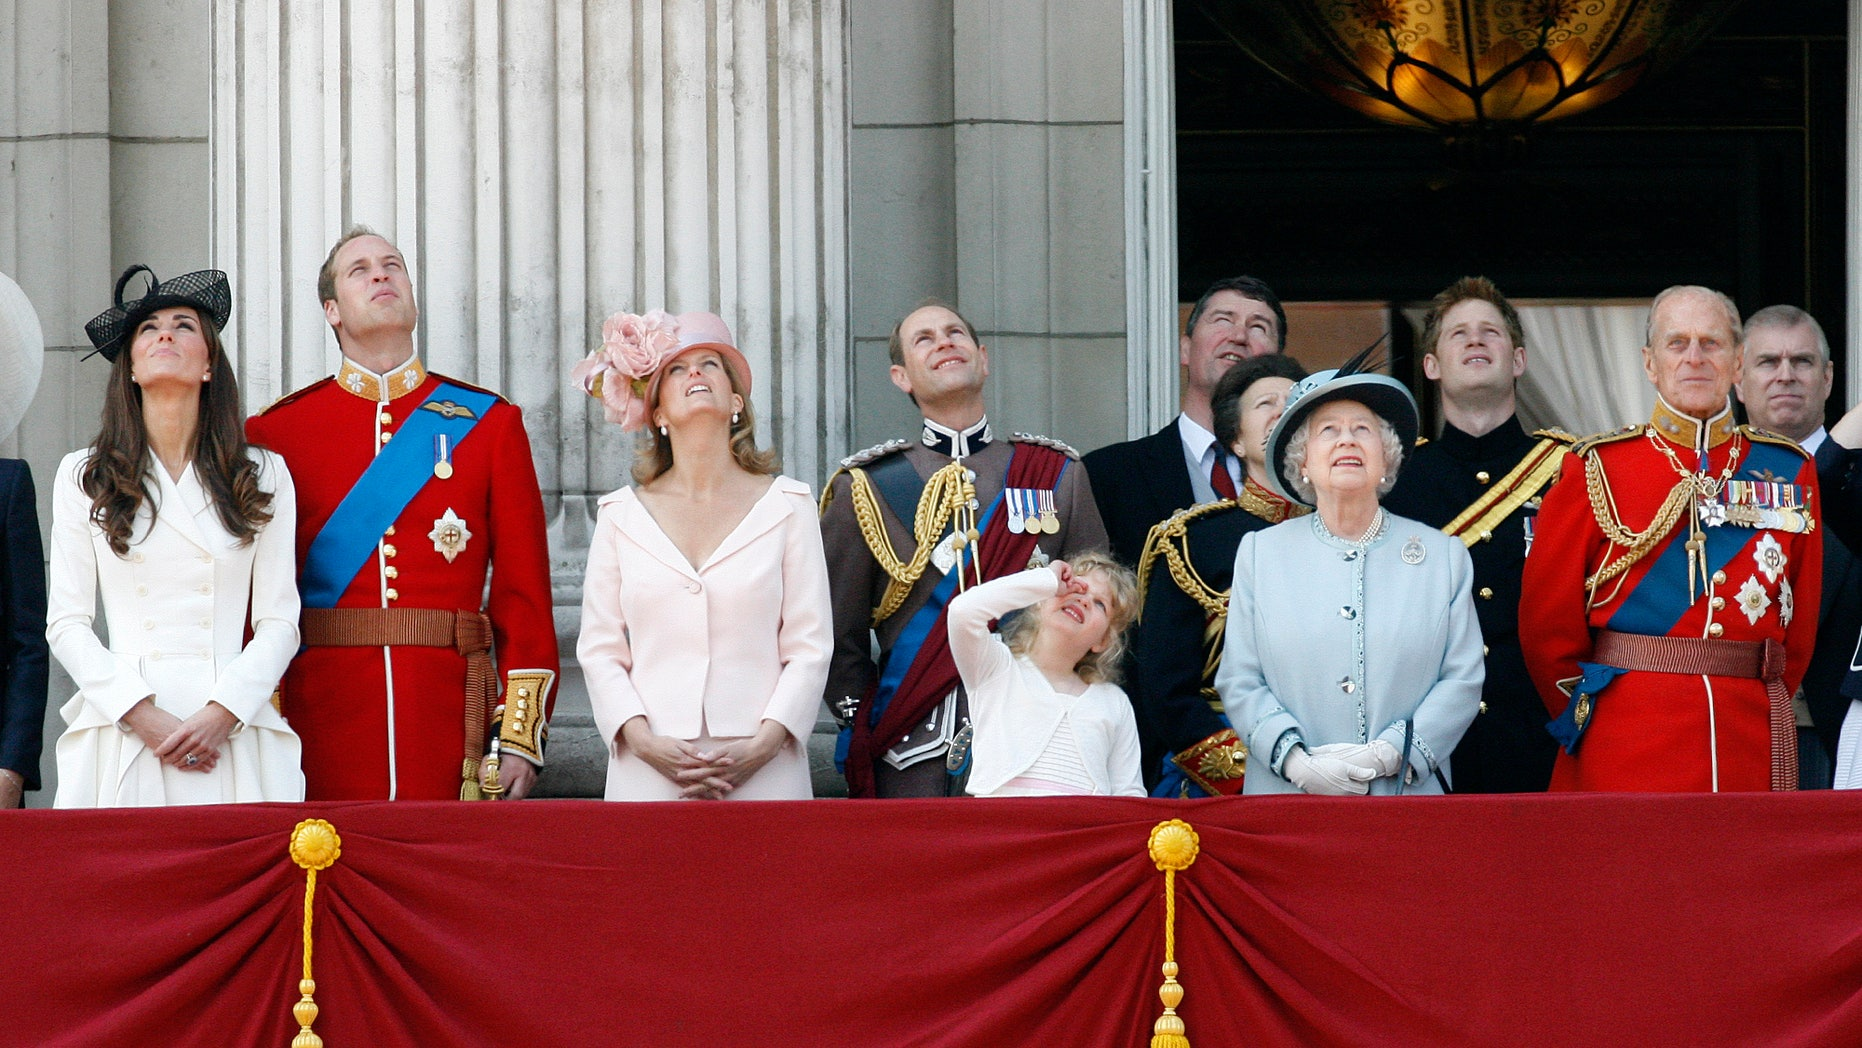 June 11, 2011: Britain's Duchess of Cambridge, Prince William the Duke of Cambridge, Countess of Wessex Sophie, Prince Edward the Earl of Wessex, their daughter Louise, Princess Anne, partially seen, her husband Tim Lawrence, Britain's Queen Elizabeth II, Prince Harry, Prince Philip the Duke of Edinburgh, and Prince Andrew, watch a Royal Air Force flypast on the balcony of Buckingham Palace.